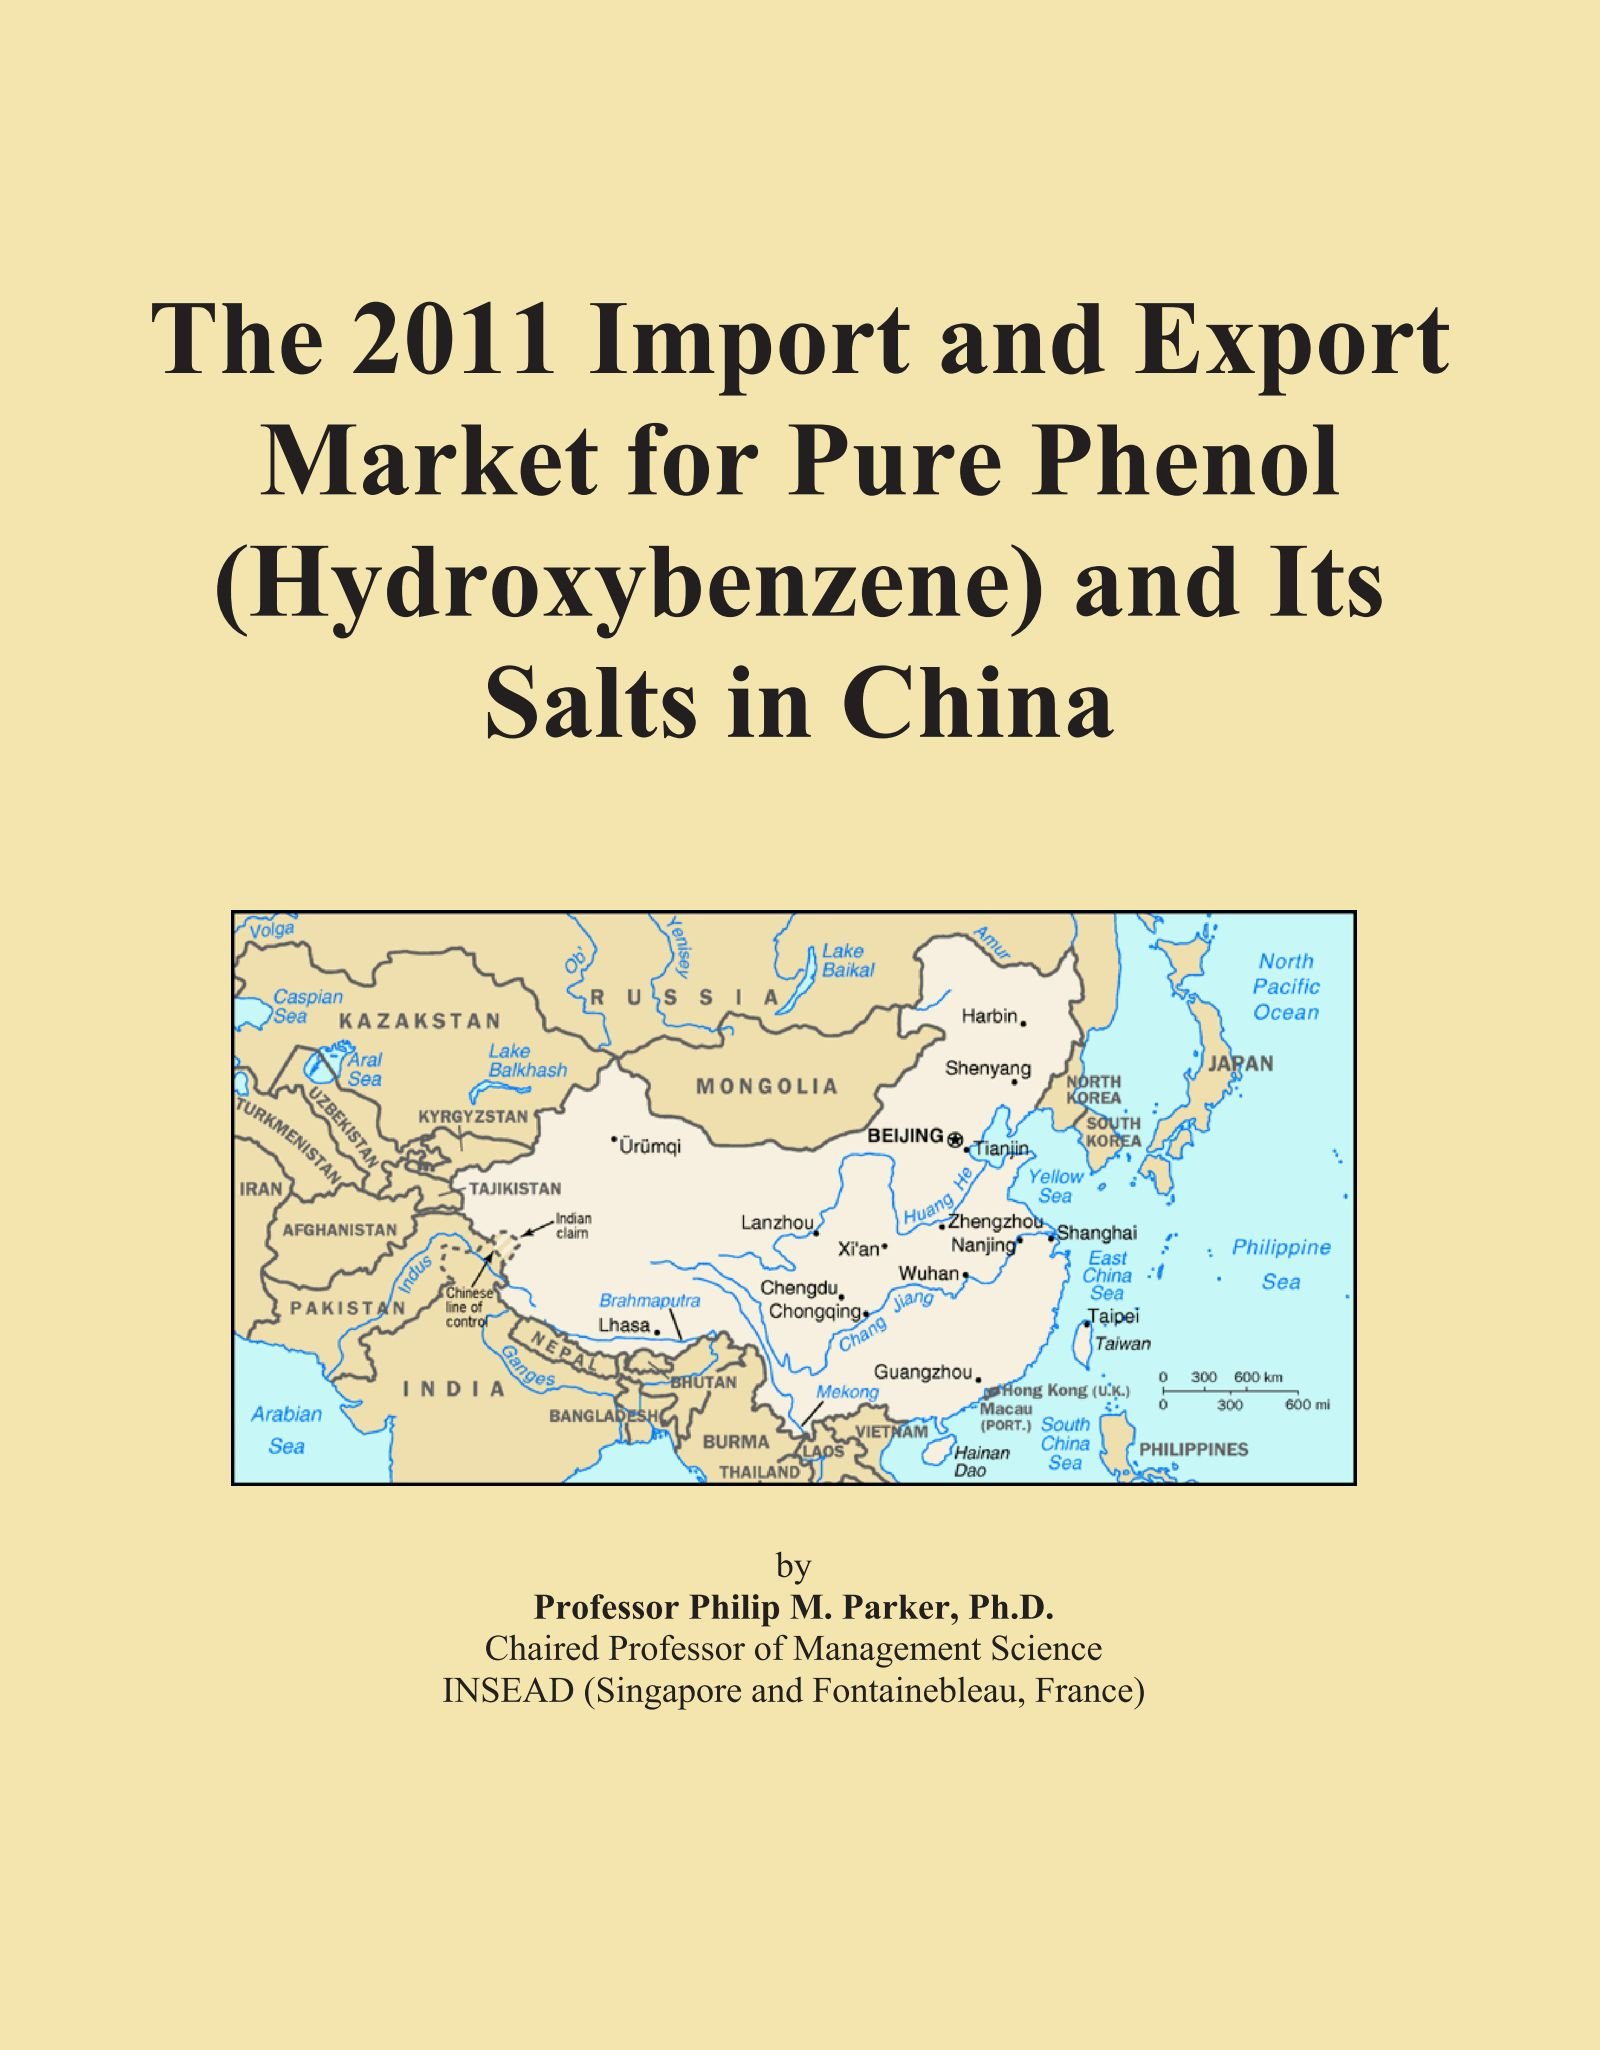 The 2011 Import and Export Market for Pure Phenol (Hydroxybenzene) and Its Salts in China pdf